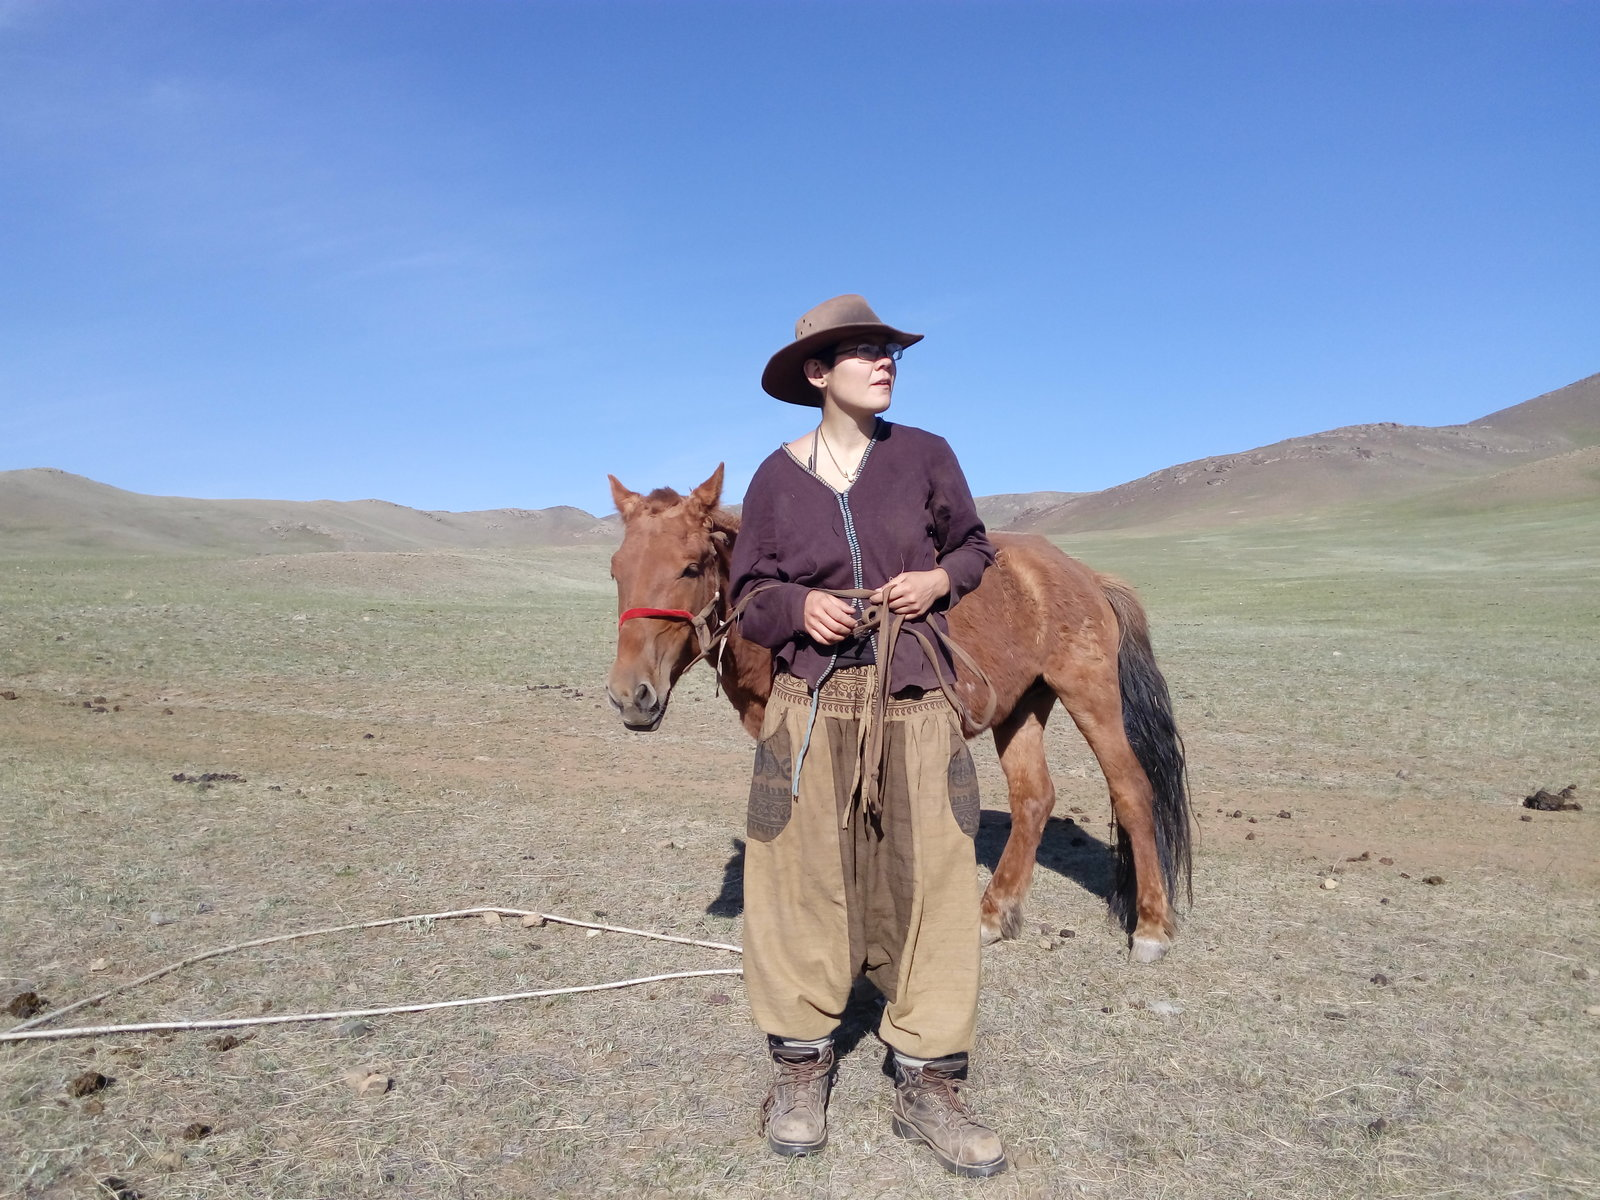 img_20160531_091451-jpg.32001_Polvo the Mongolian Horse_Furry Nomads_Squat the Planet_10:41 PM